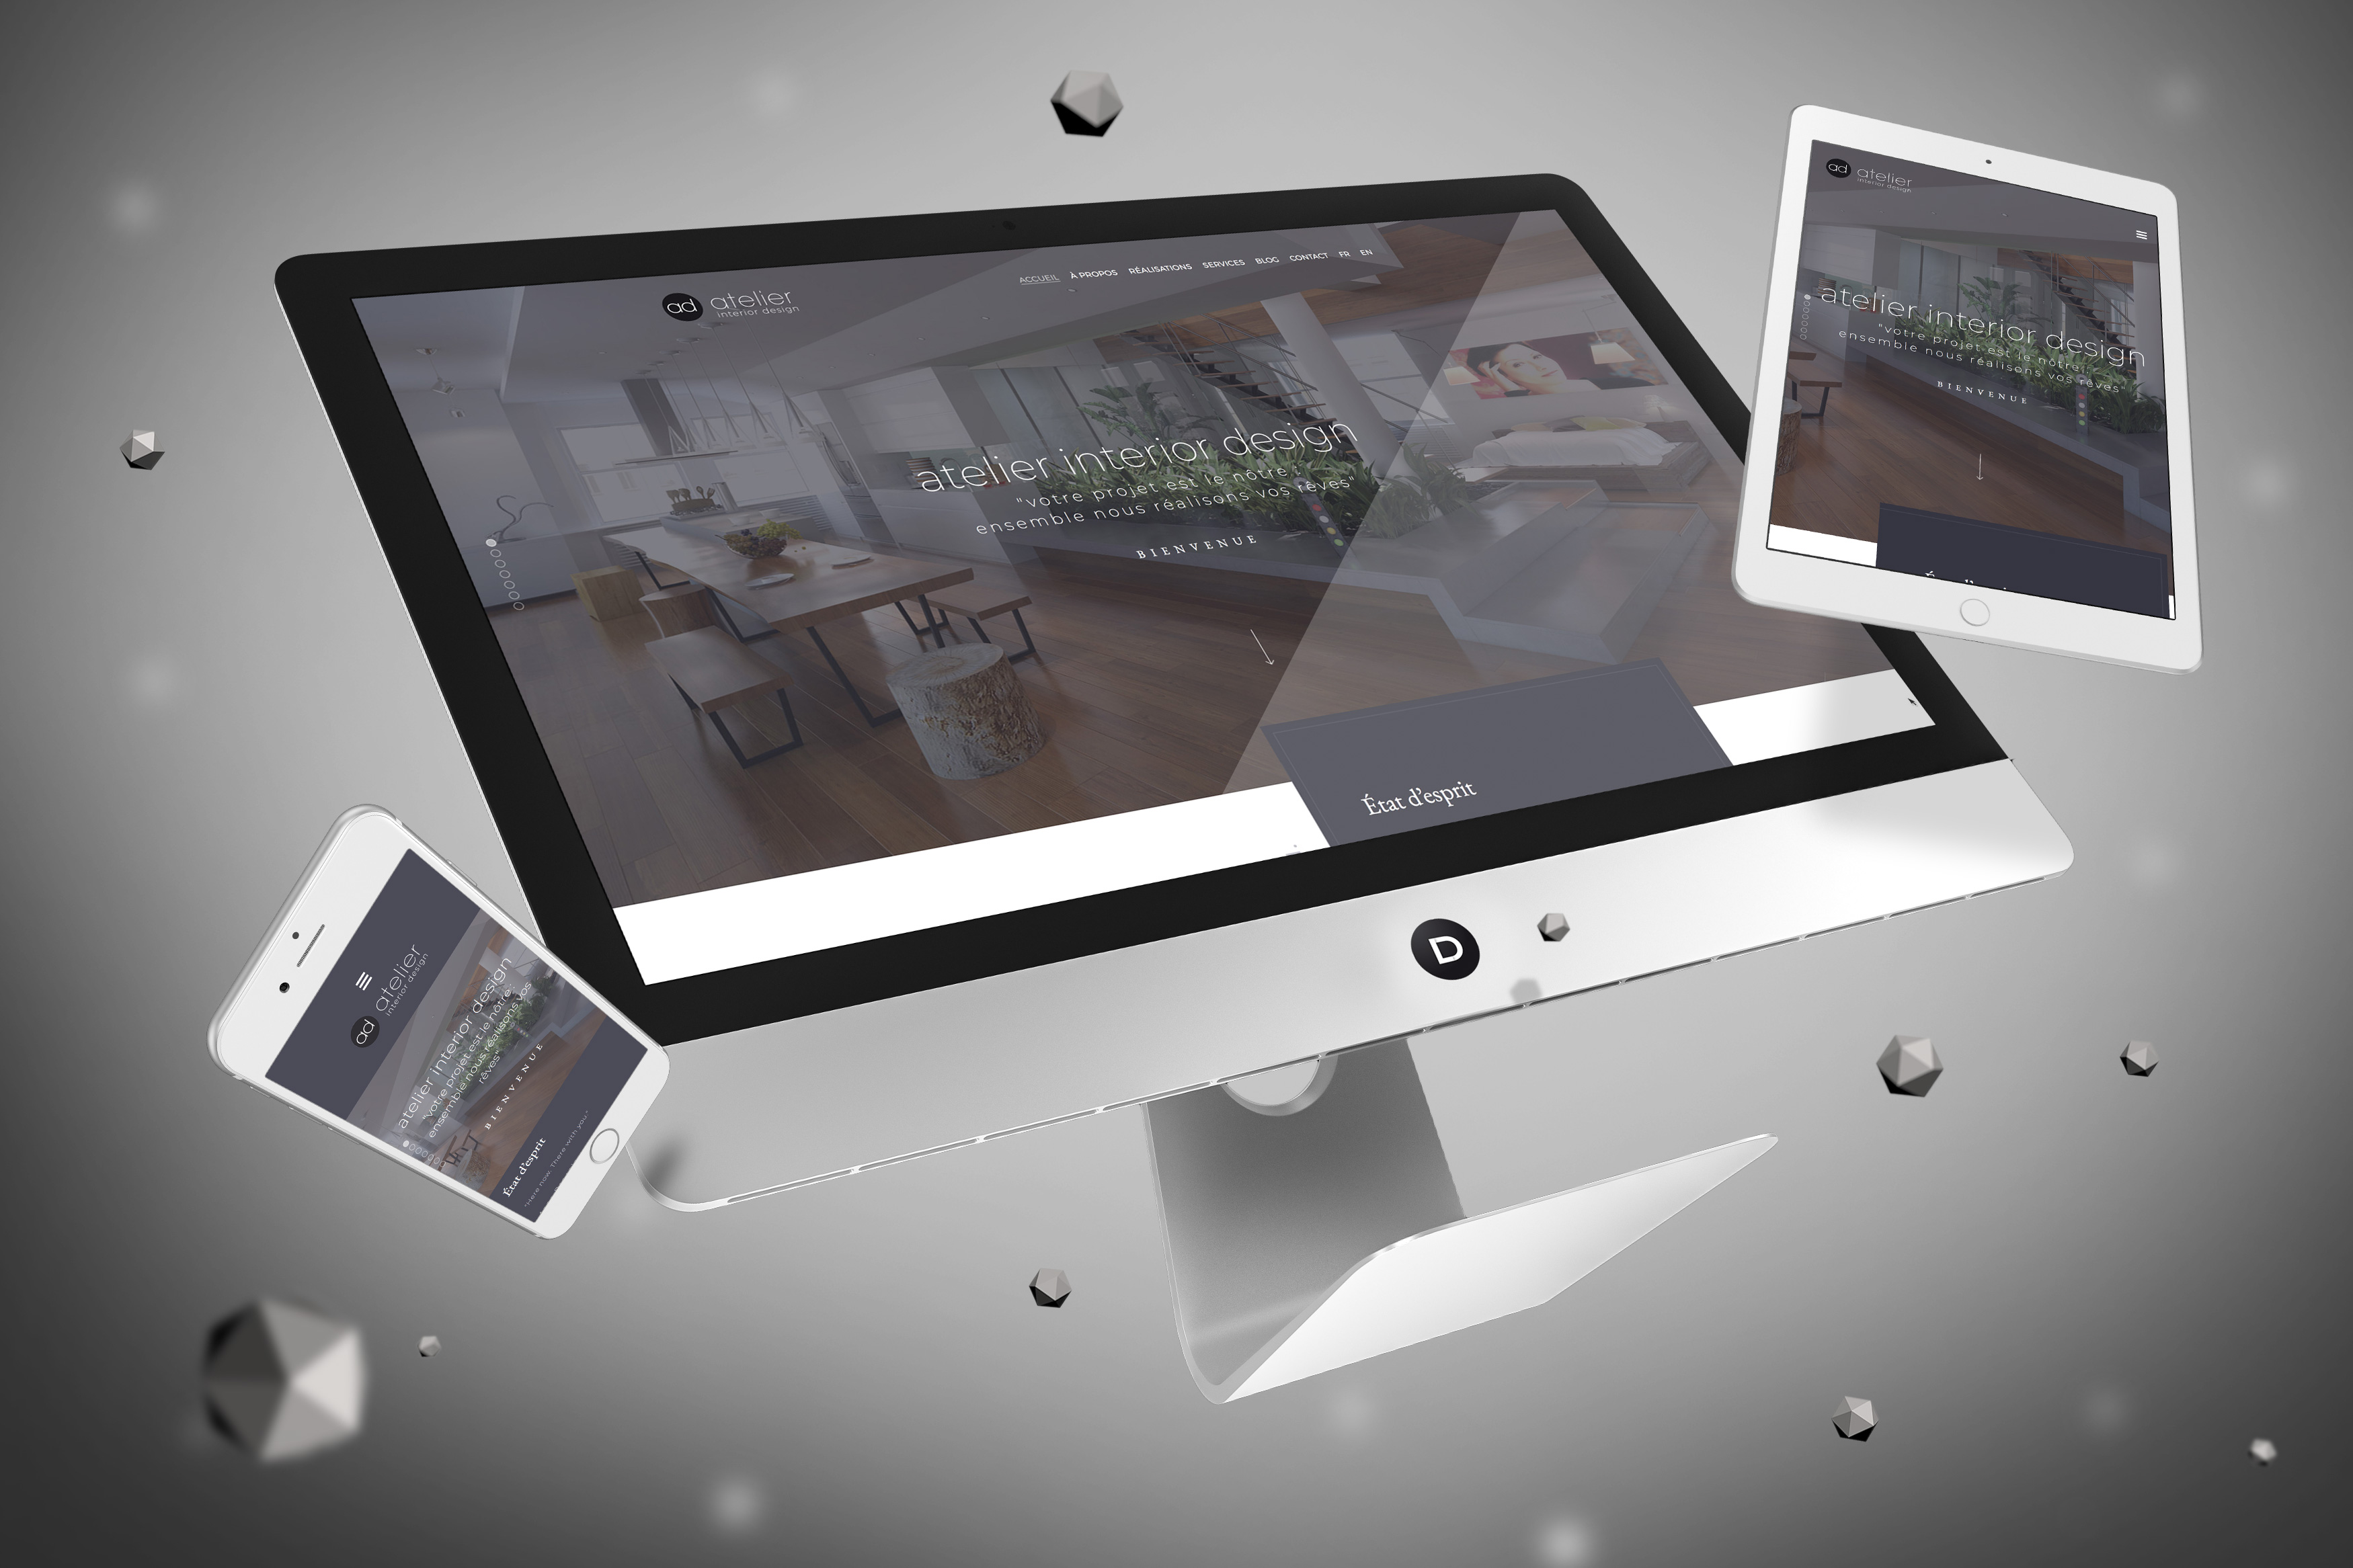 Site_Internet-ad_Interior_design-anne_denonin-Lartigue_Design-responsive-3D